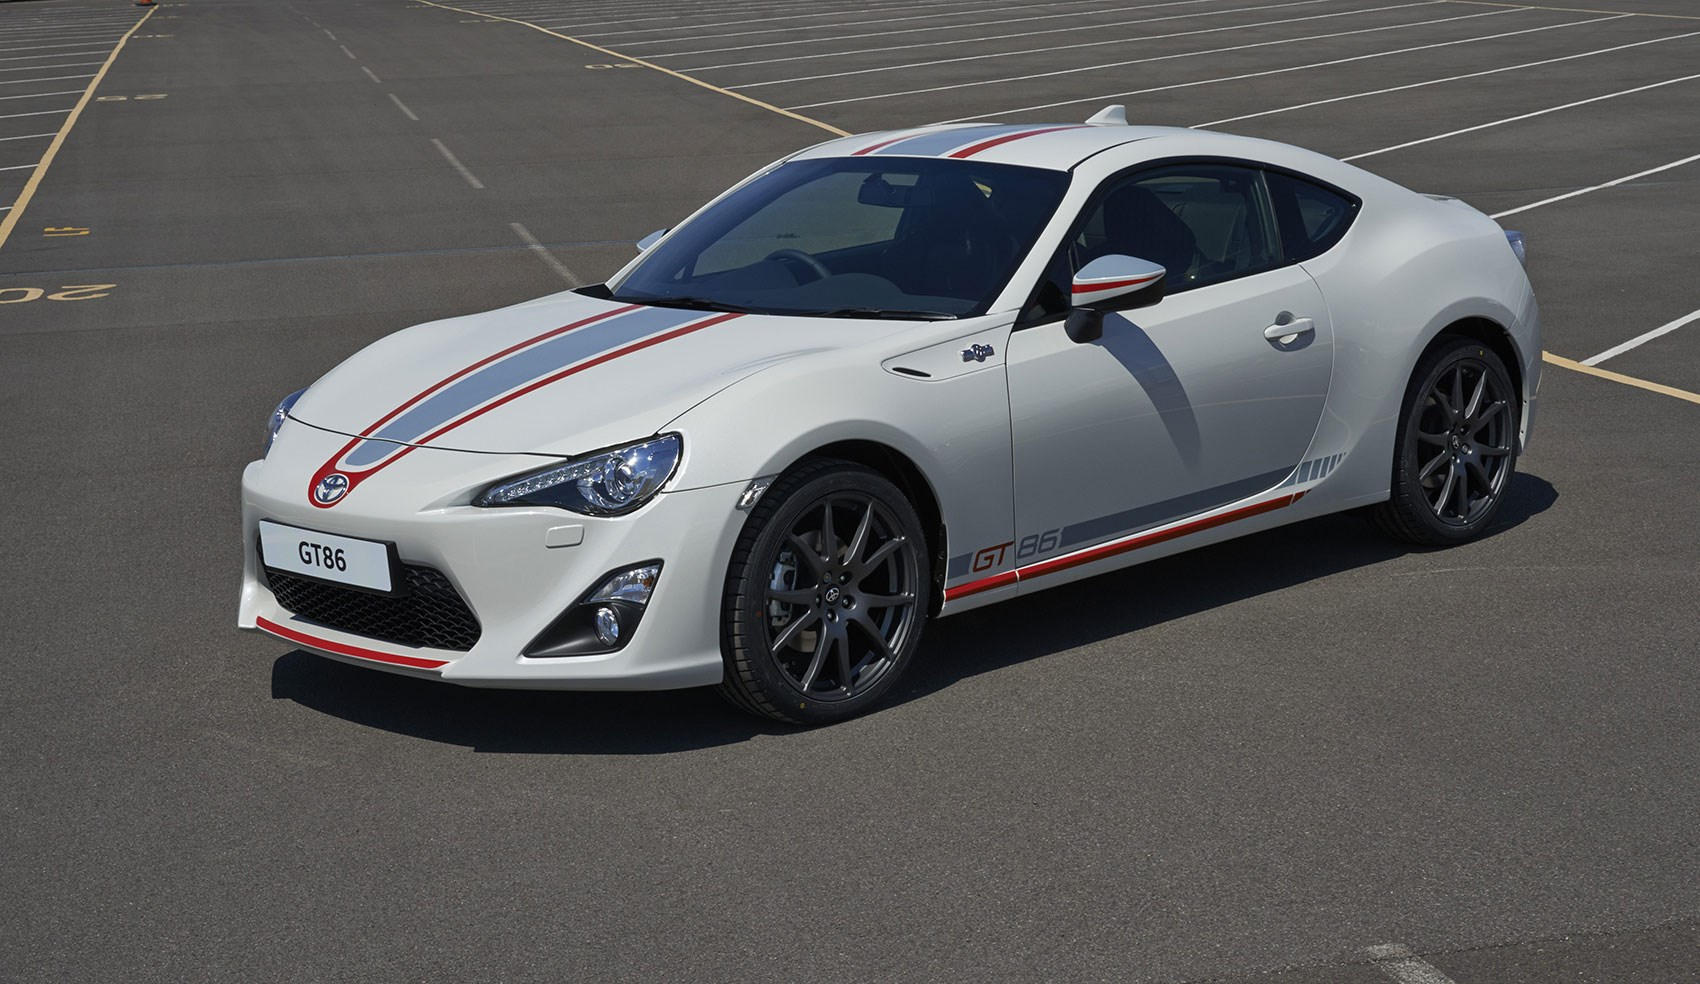 toyota gt86 blanco edition 2015 range topping model gets sporty decals by car magazine. Black Bedroom Furniture Sets. Home Design Ideas